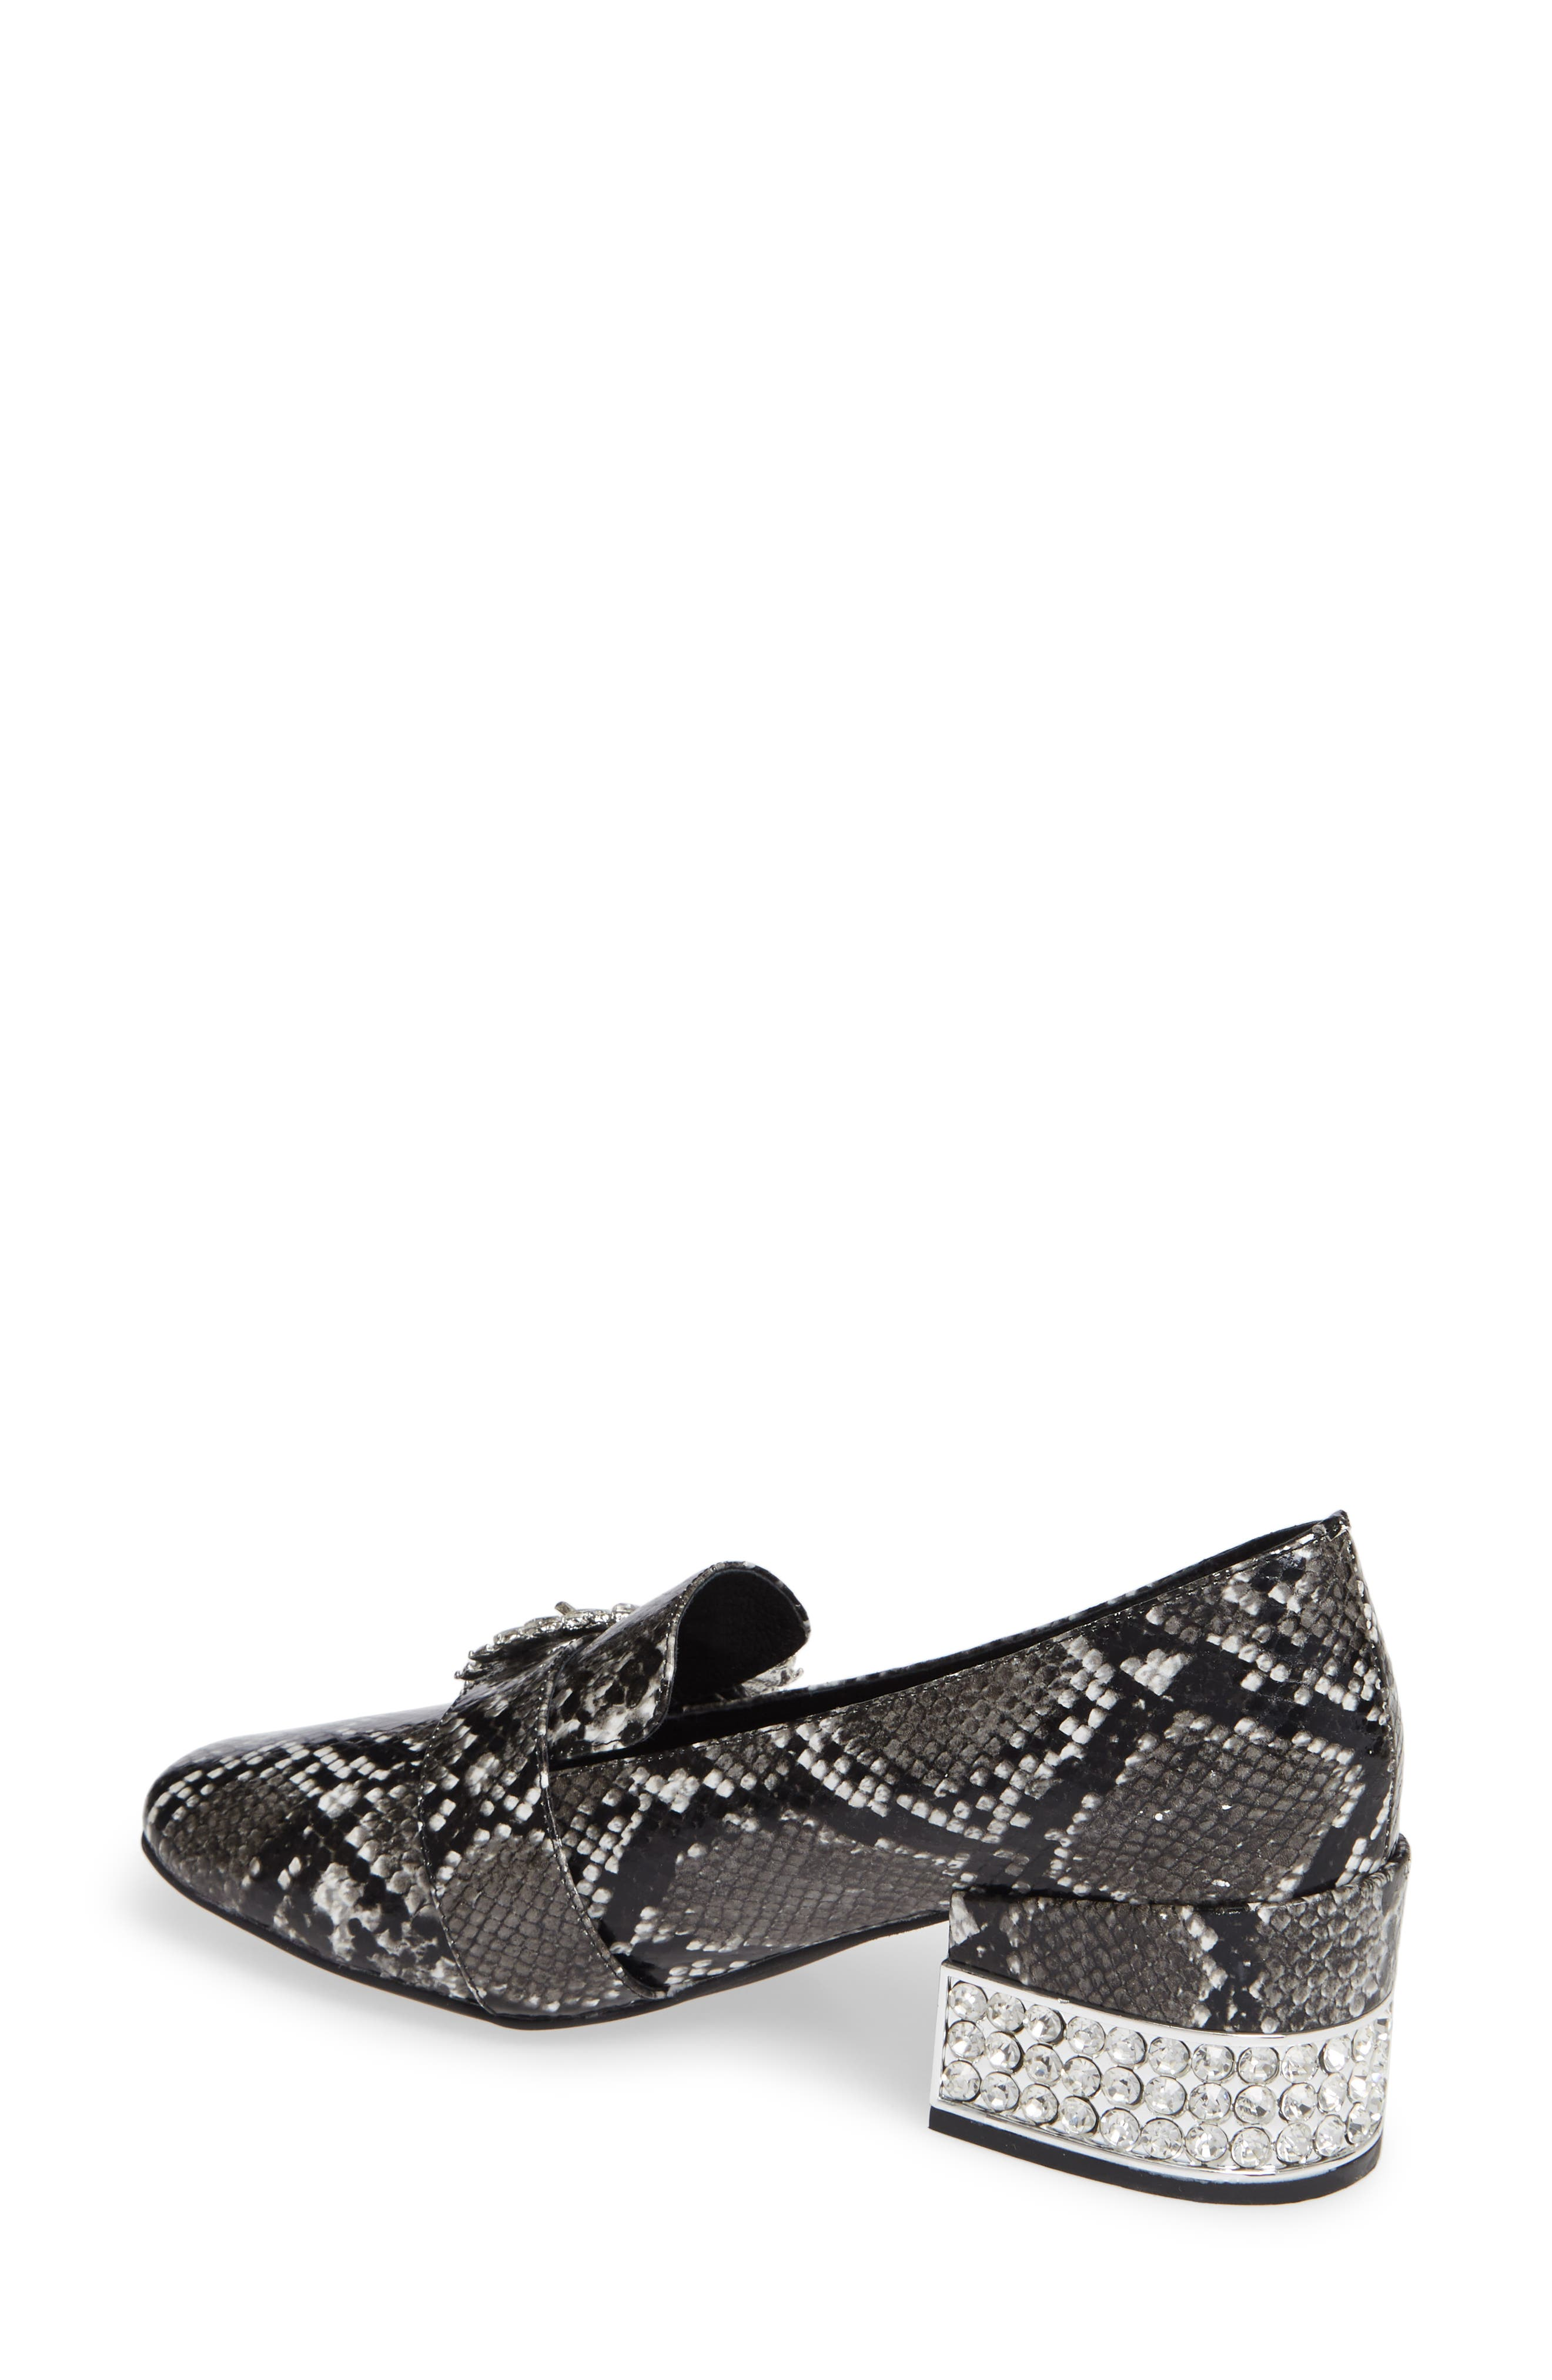 Louisa Pump,                             Alternate thumbnail 2, color,                             SNAKE PRINT LEATHER/ SILVER